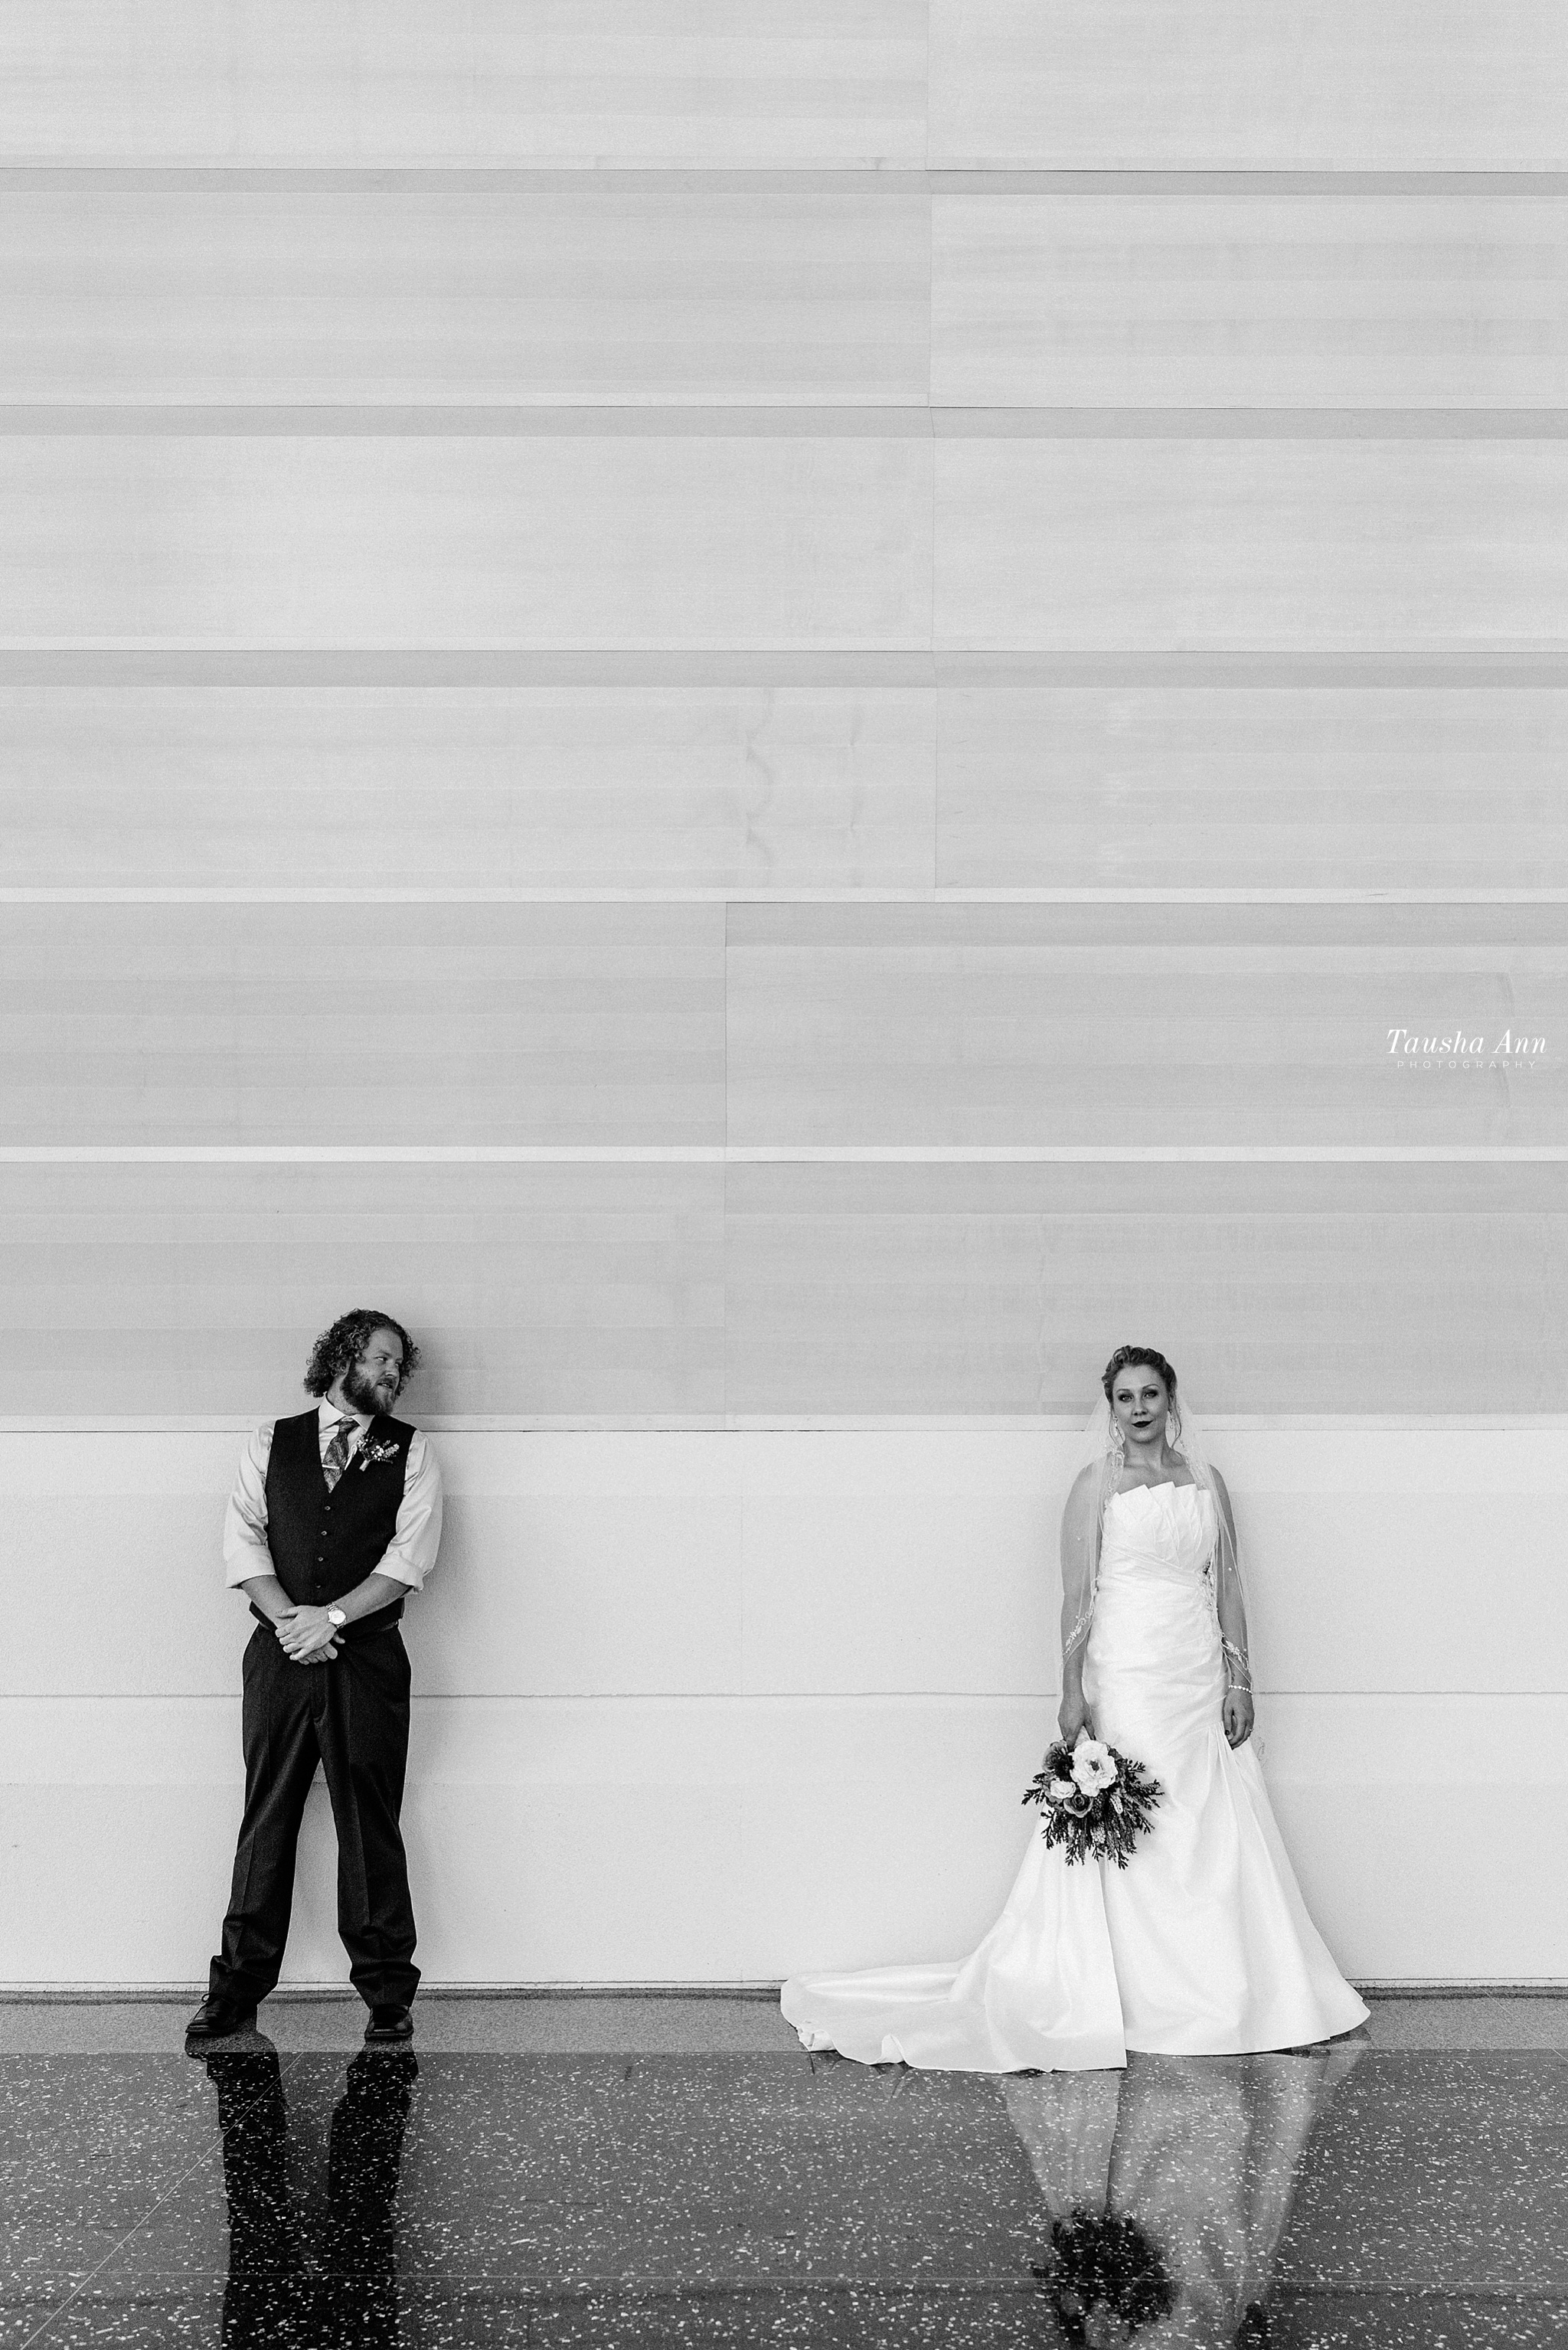 Bride and Groom standing up against wall. Groom looking at bride. Bride looking at camera. Grand Wayne Convention Center. Black and White.